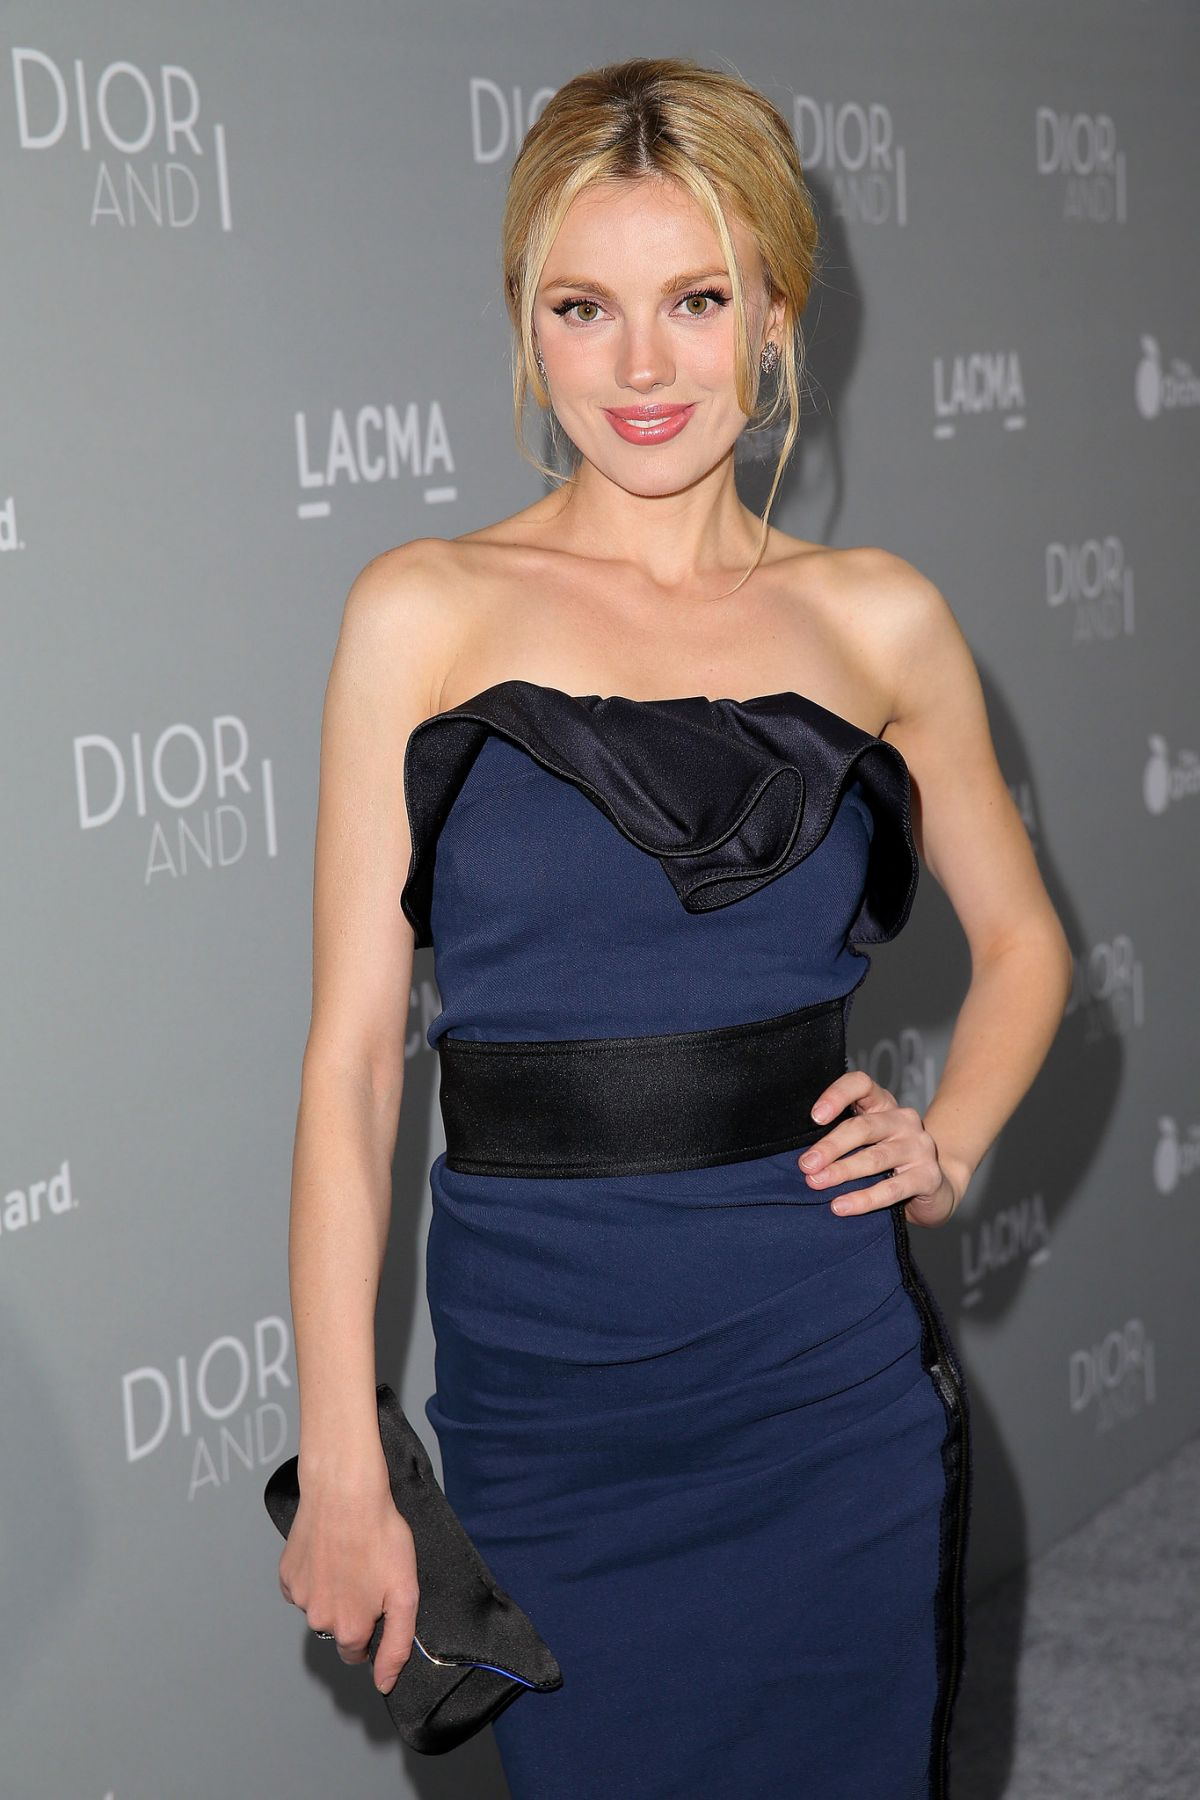 BAR PALY at Dior and I Premiere in Los Angeles